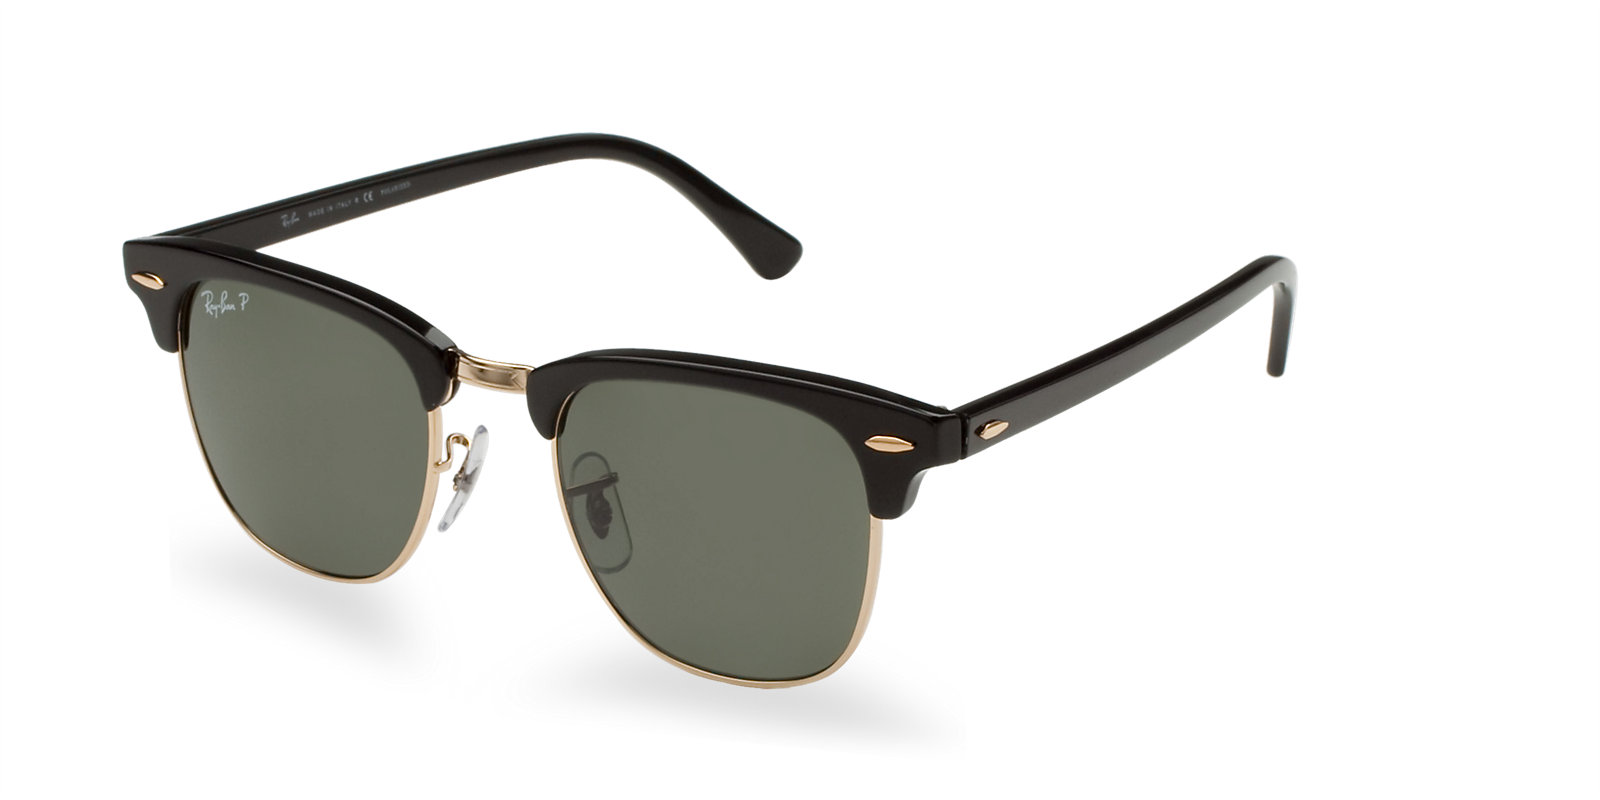 38caa856157 Previous  Next. Previous  Next. RAY-BAN RB3016 901 58 POLARIZED BLACK CLUBMASTER  SUNGLASSES